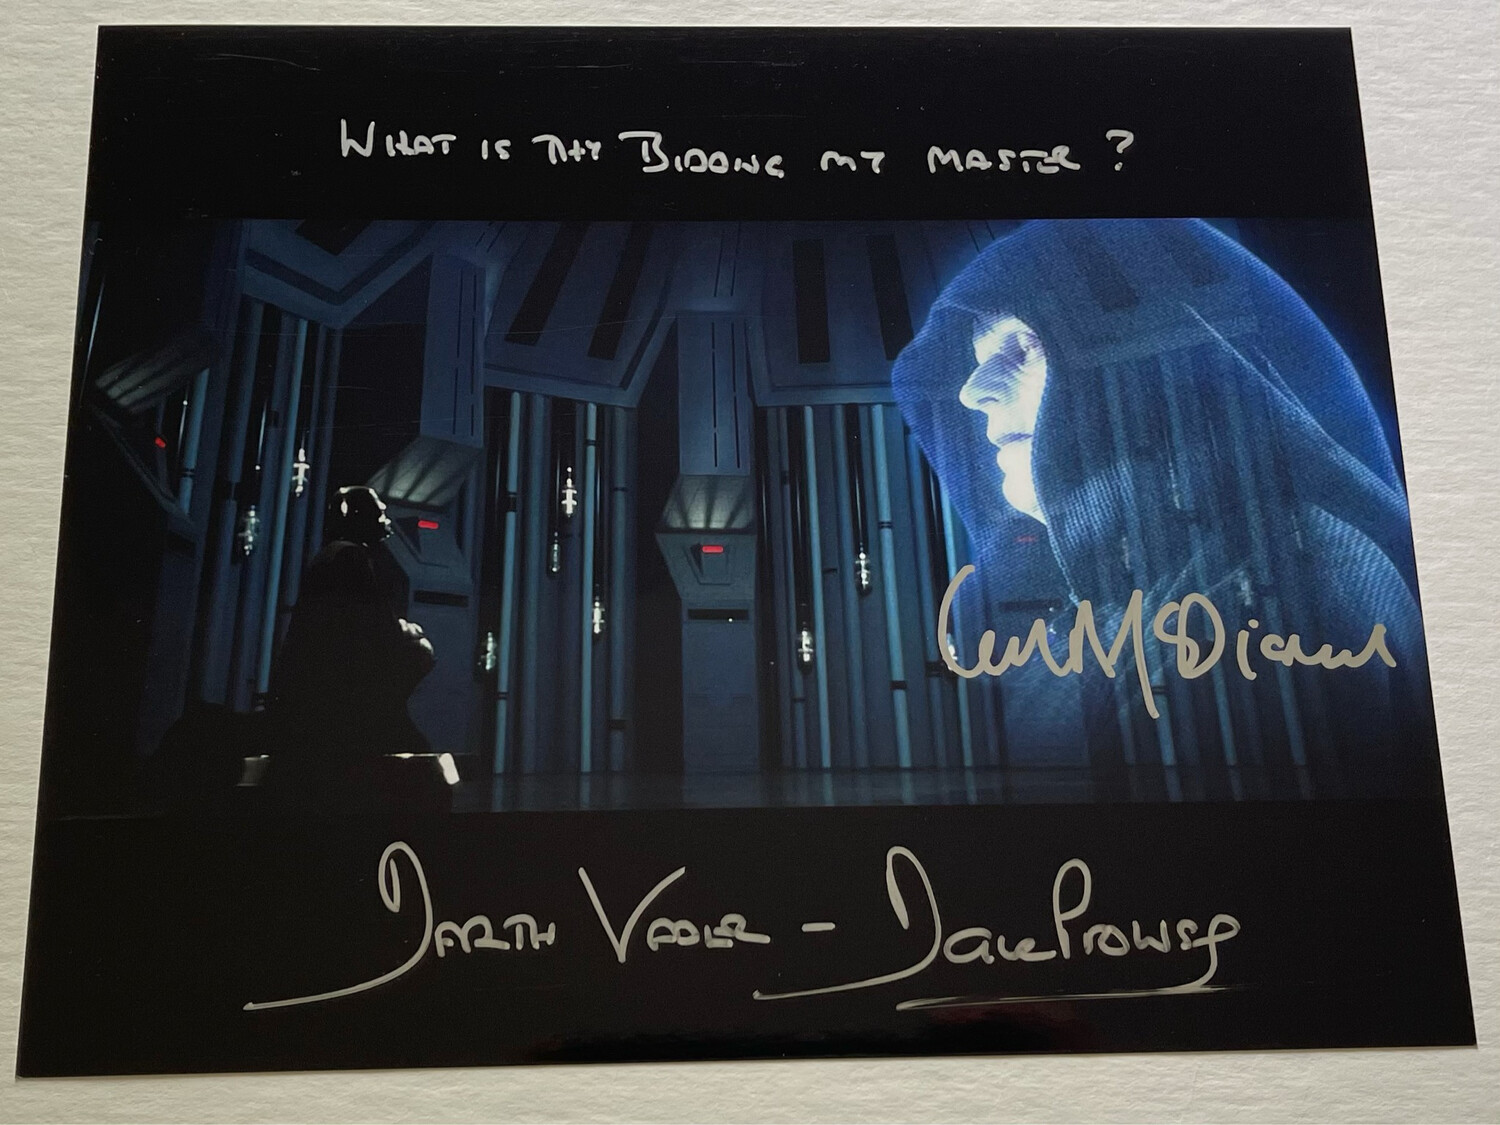 8X10 DARTH VADER PHOTO SIGNED BY DAVE PROWSE AND IAN MCDIARMID